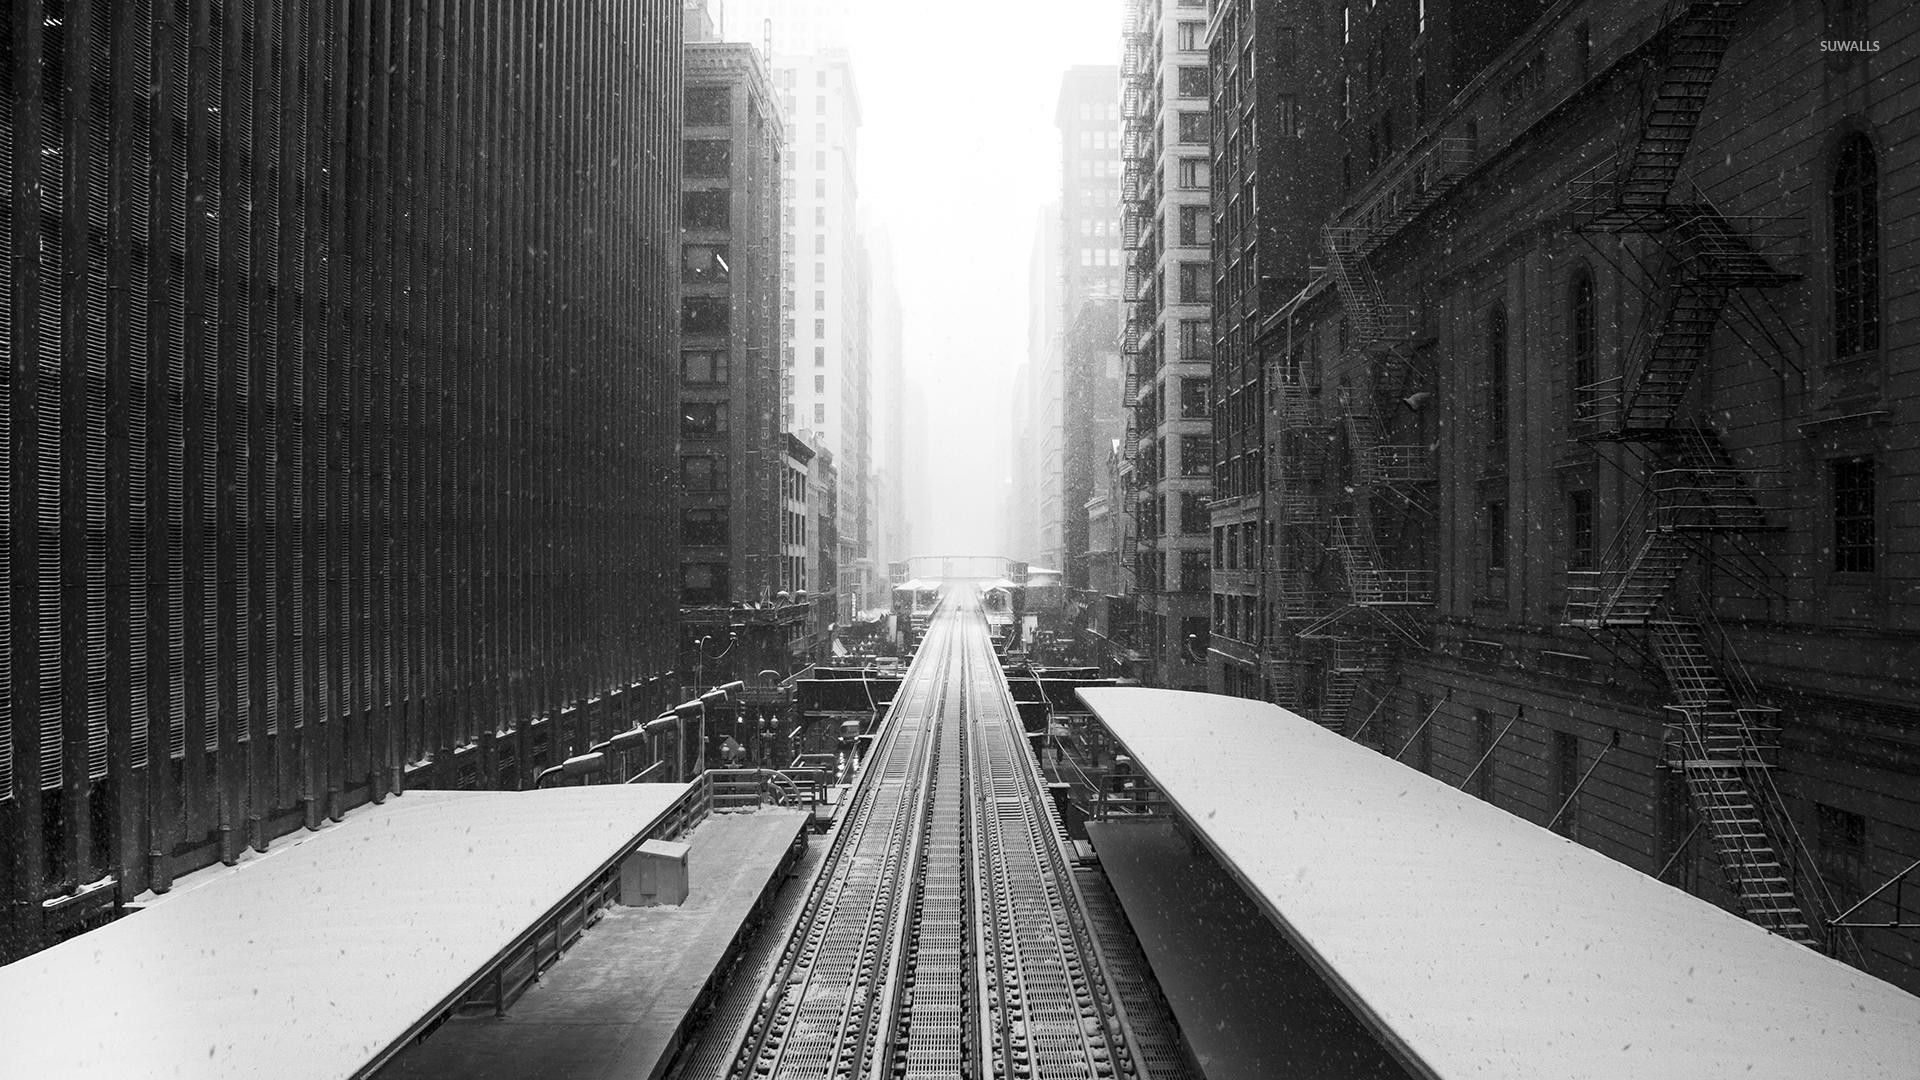 railroad in the snowy city wallpaper photography